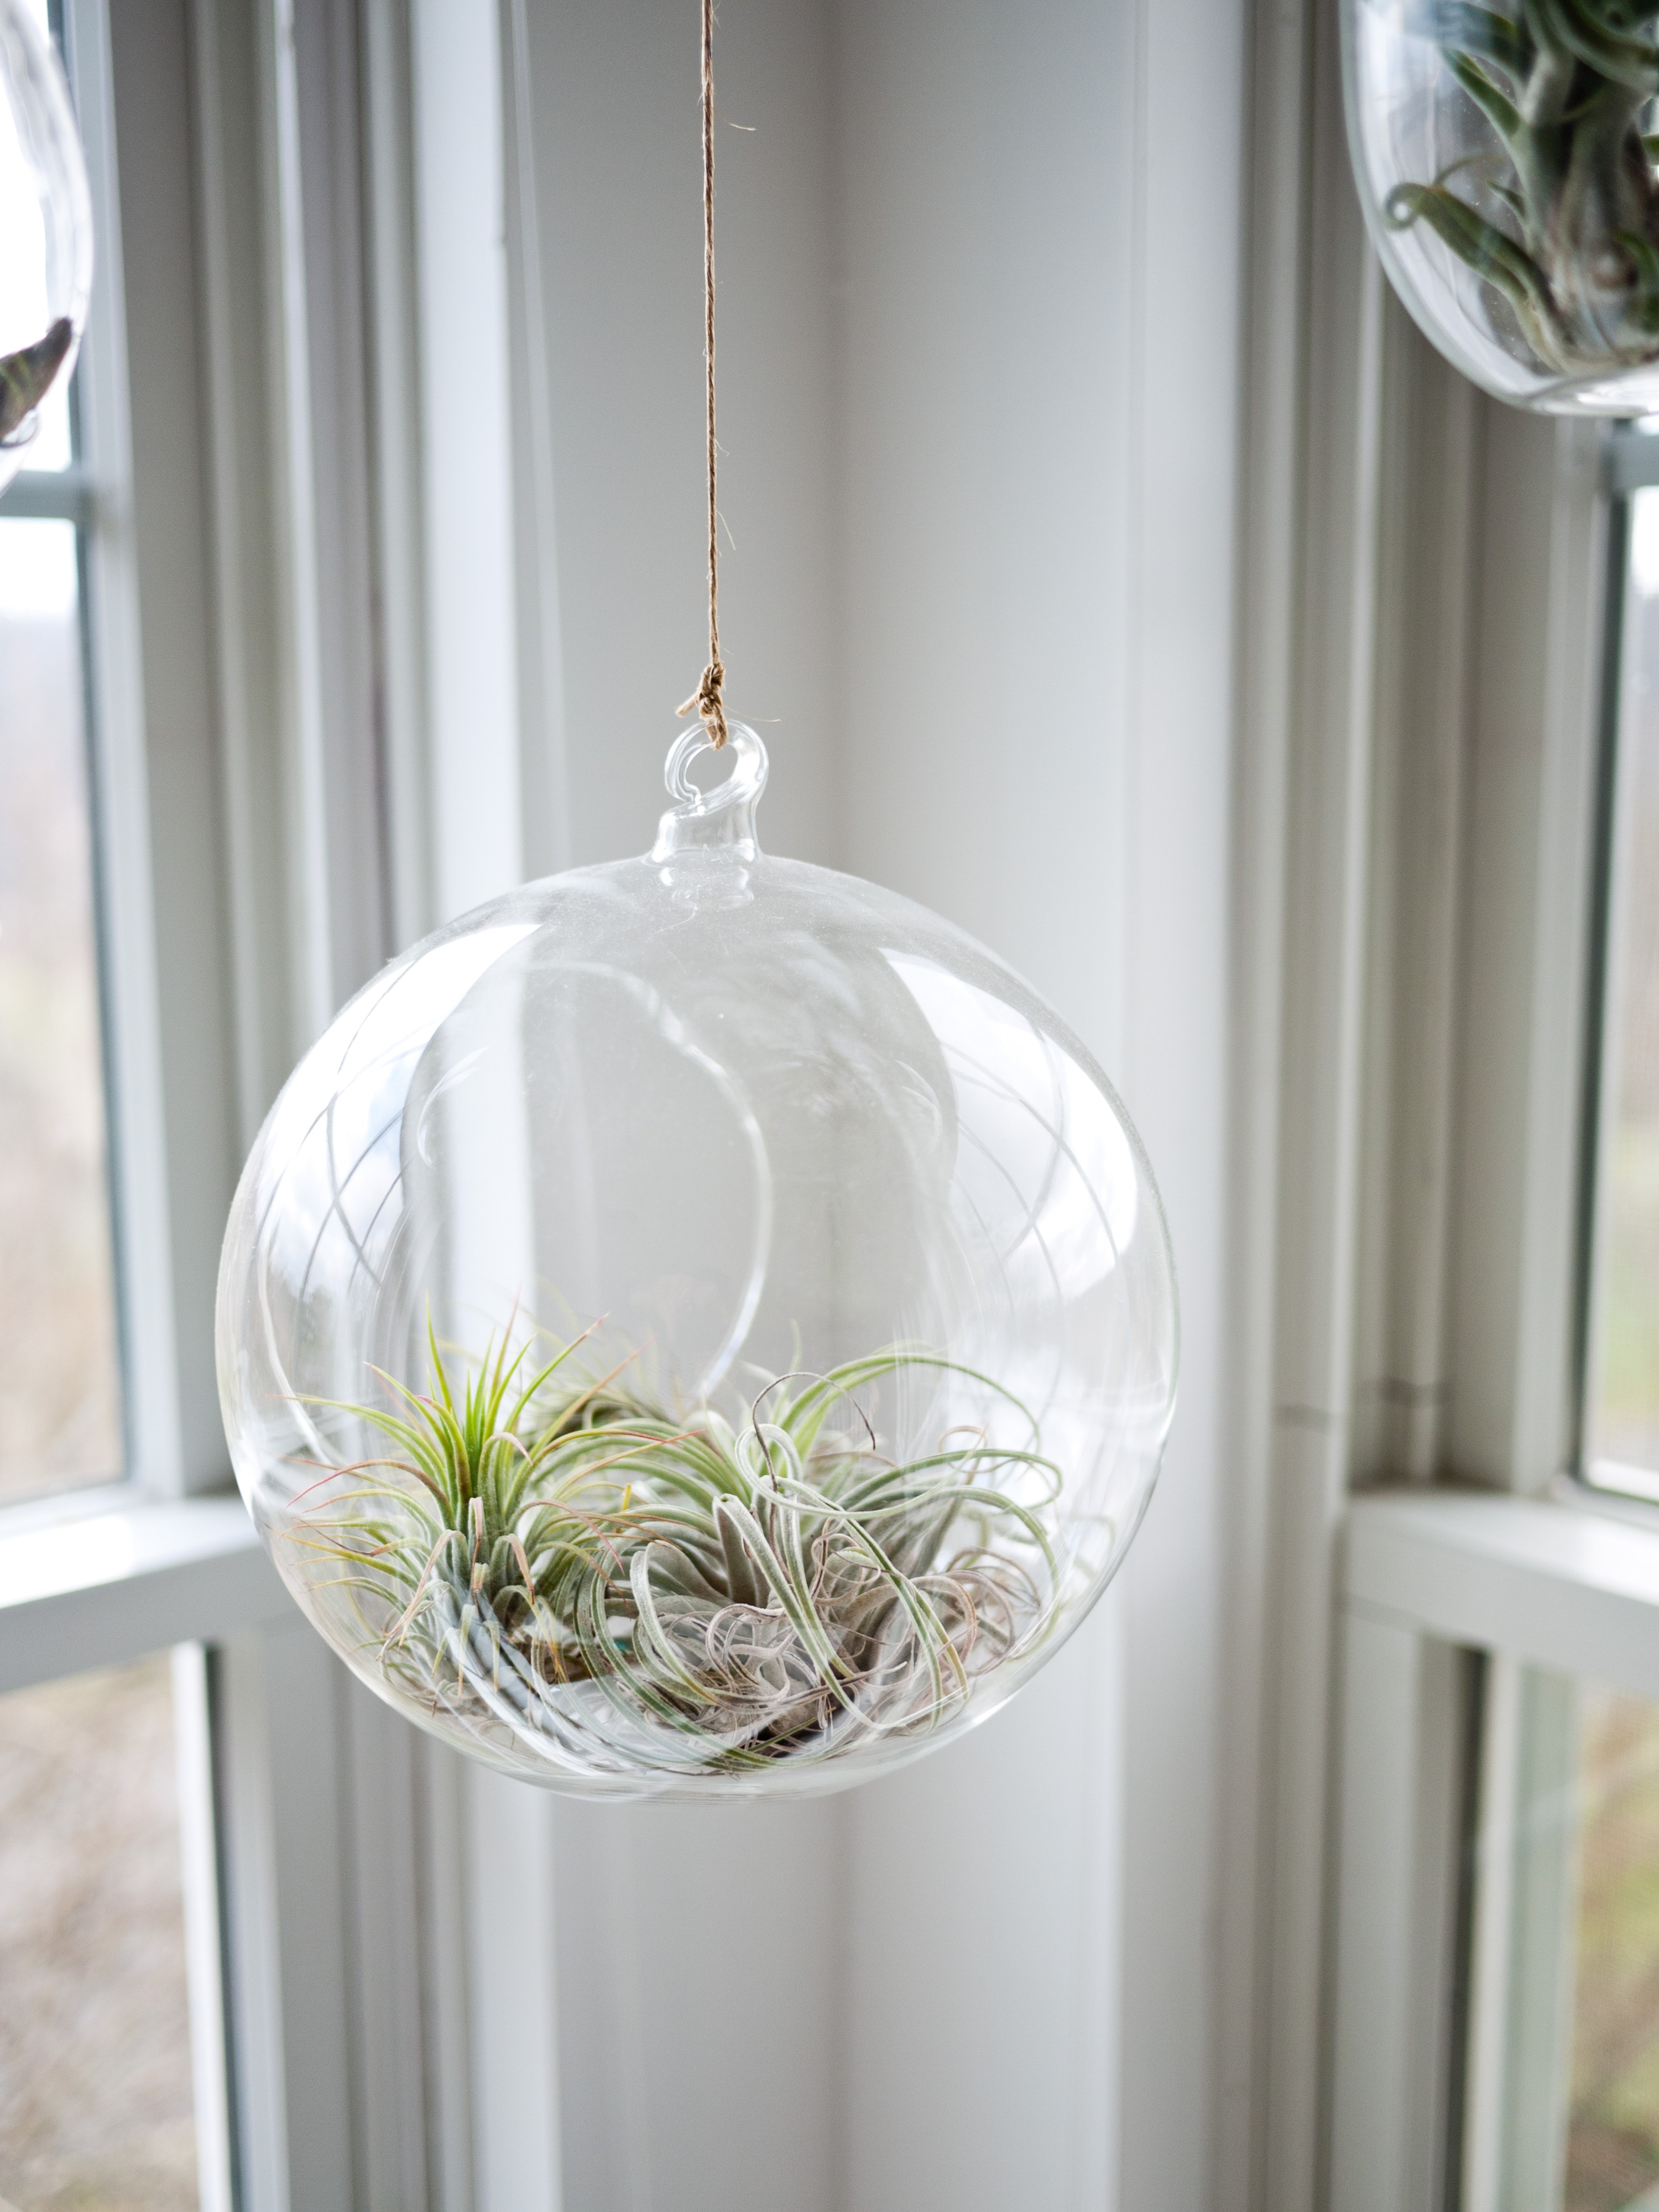 Shallow Focus Photography Of Clear Glass Hanging Terrarium Photo Free Plant Image On Unsplash